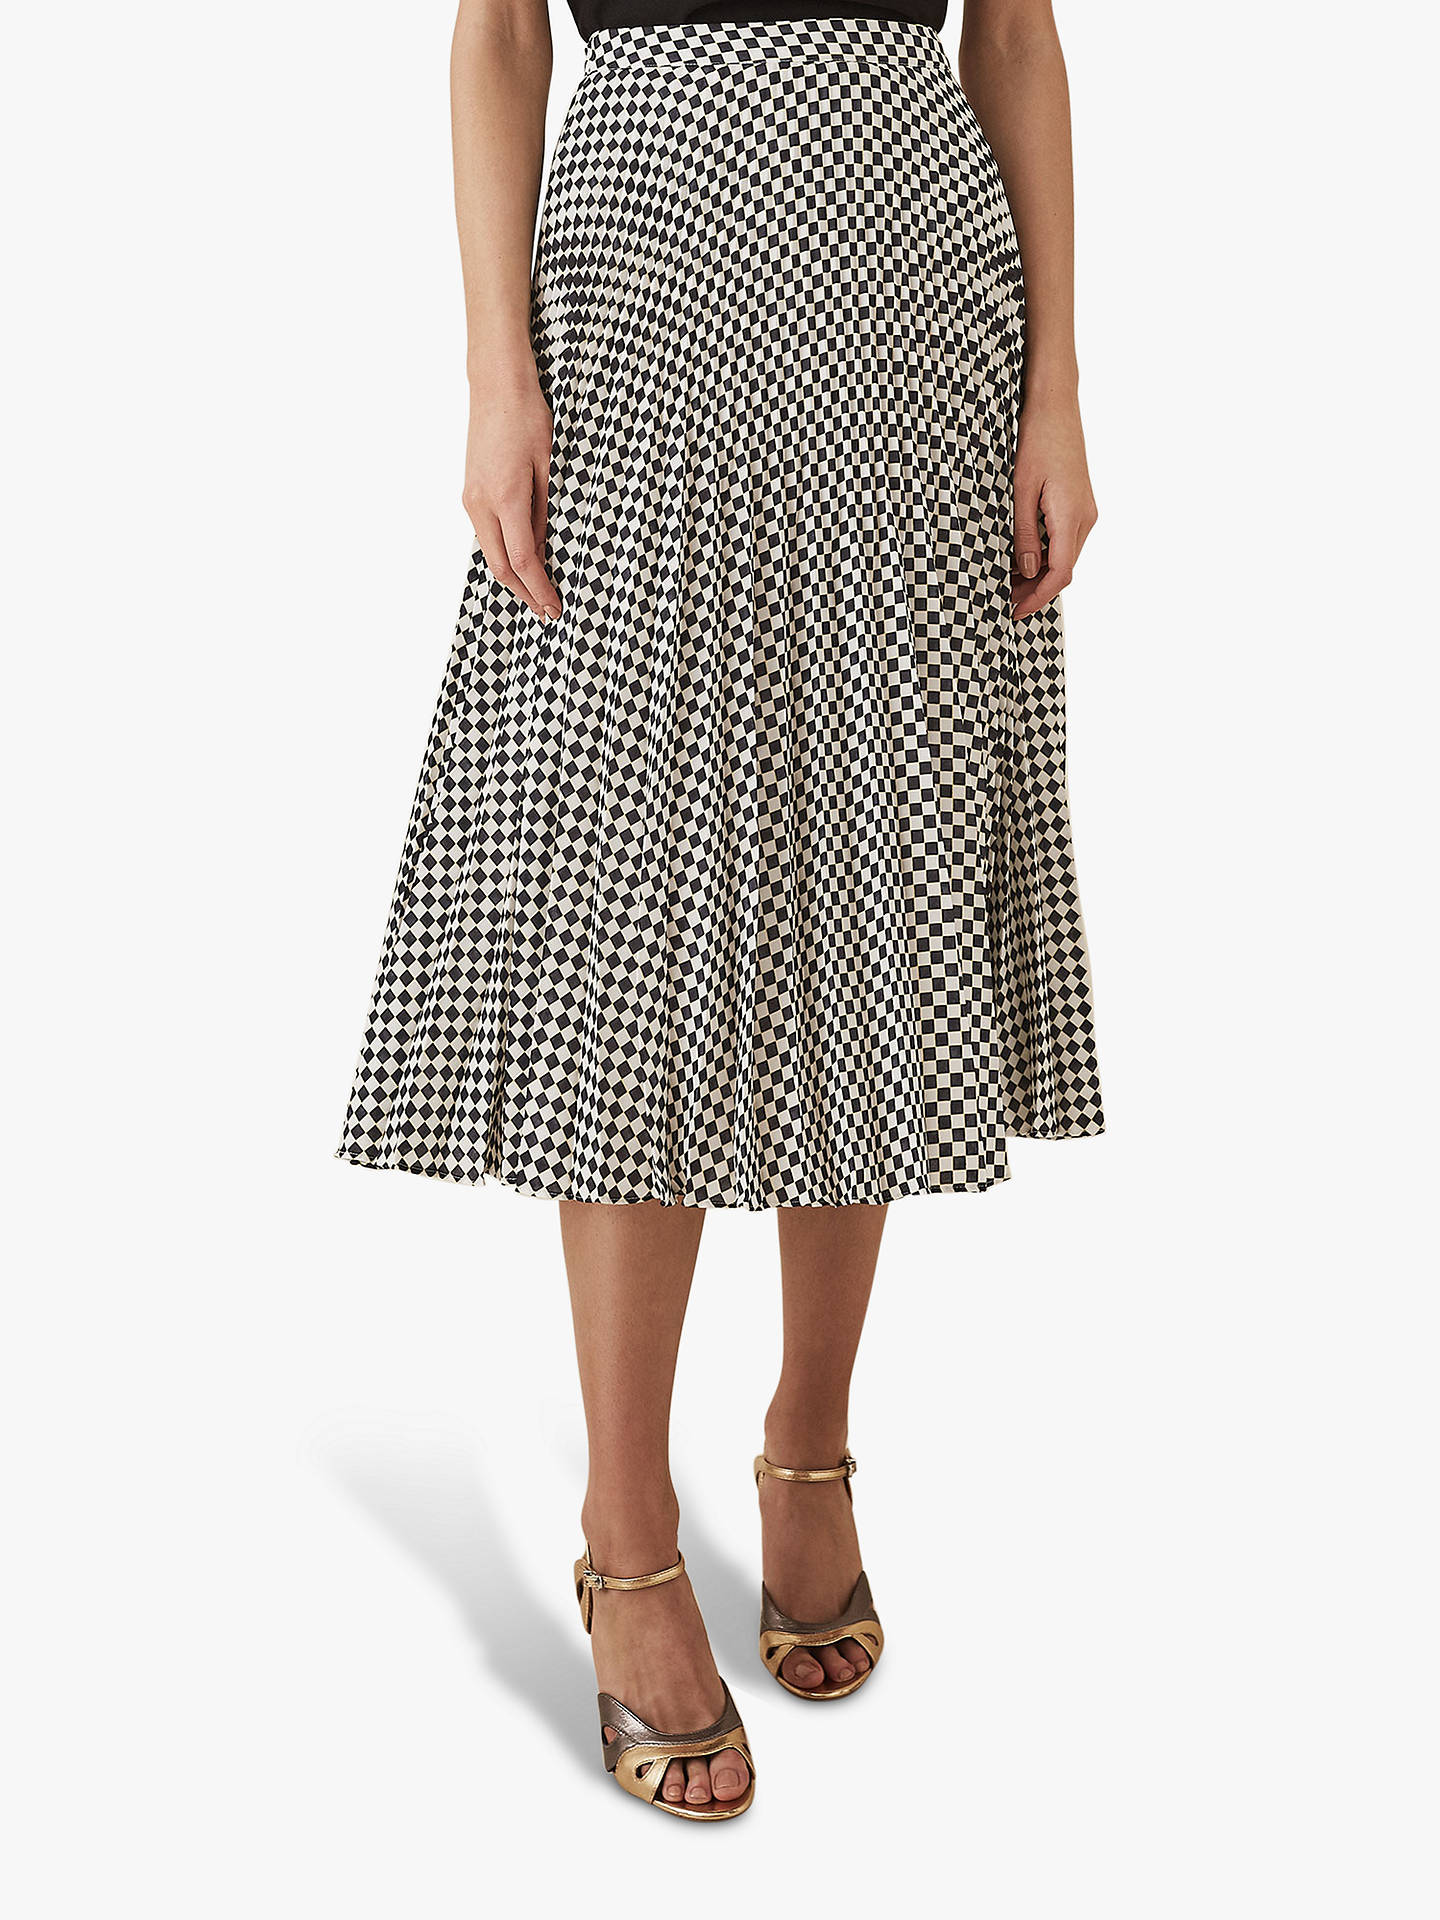 4a813f405e26a Buy Reiss Abigale Check Pleat Skirt, Black/White, 8 Online at johnlewis.